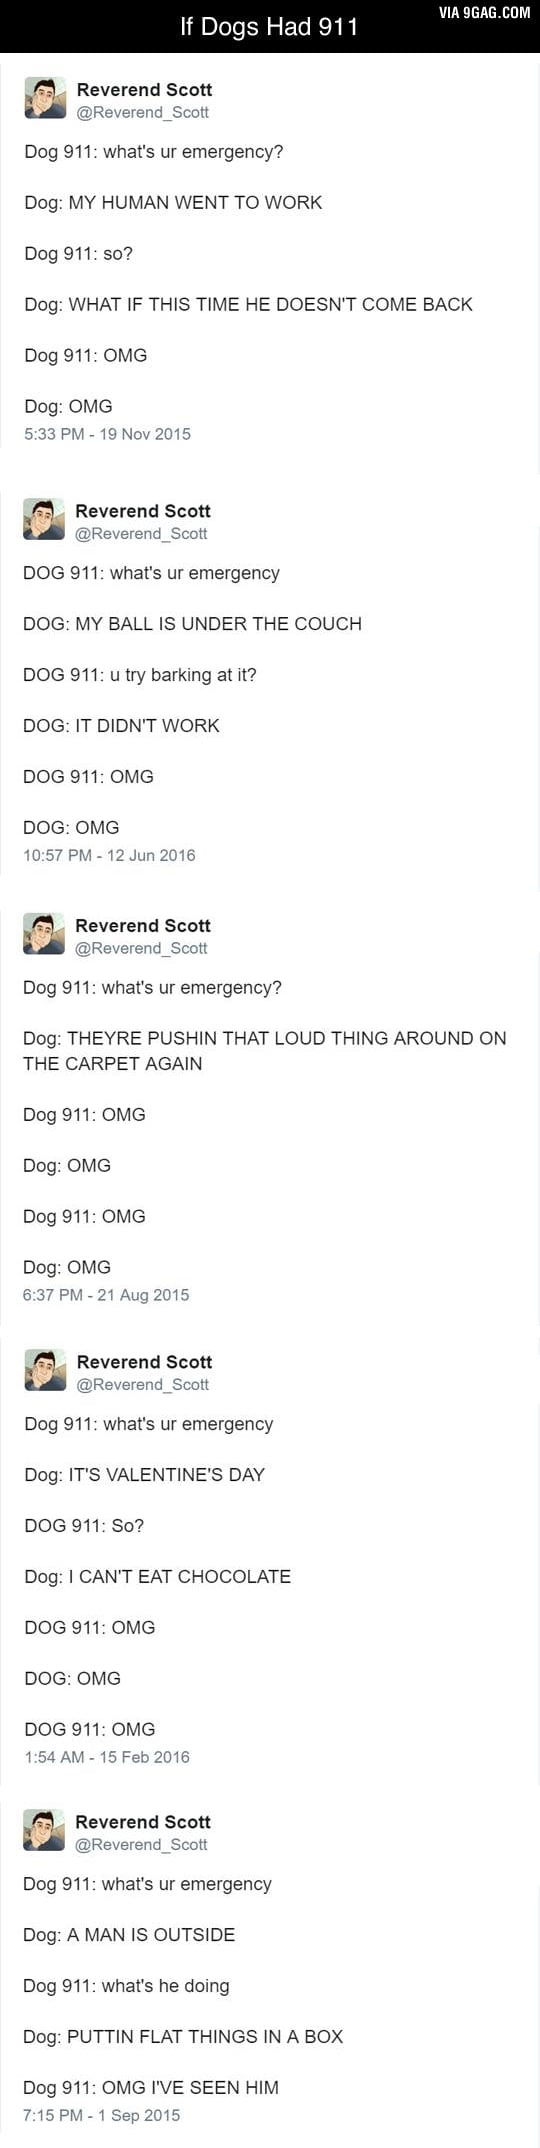 If dogs had 911